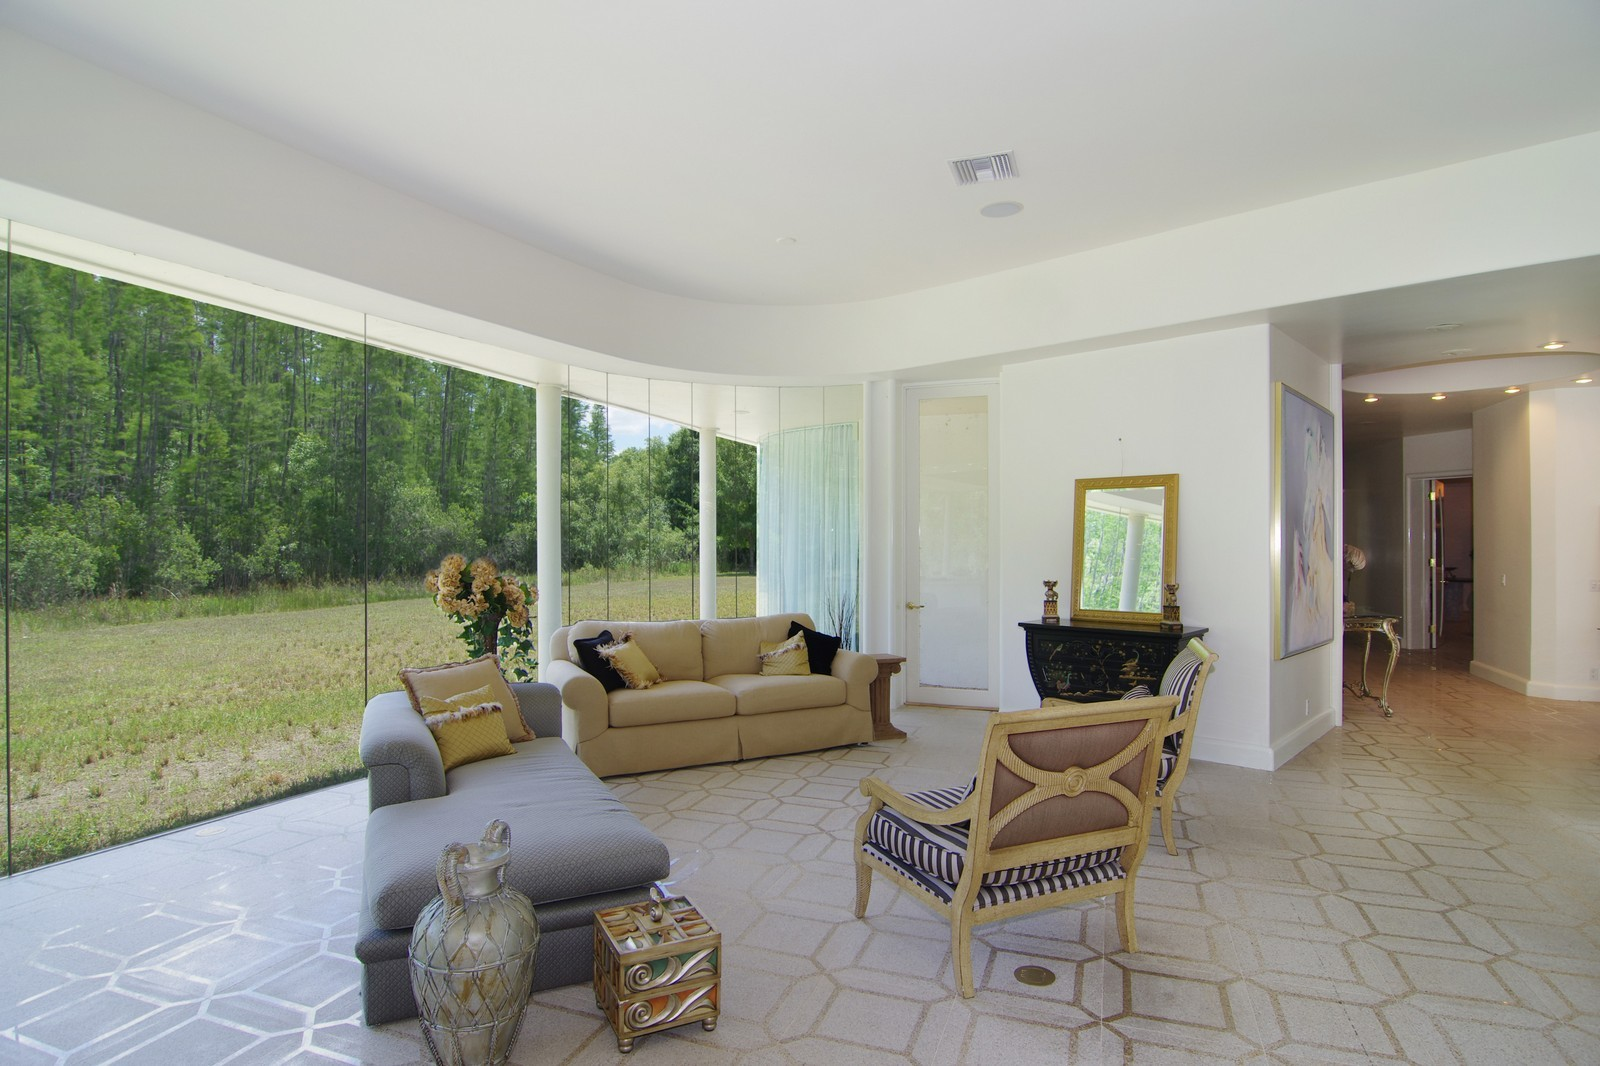 Real Estate Photography - 5601 TPC Blvd, Lutz, FL, 33558 - Living Room